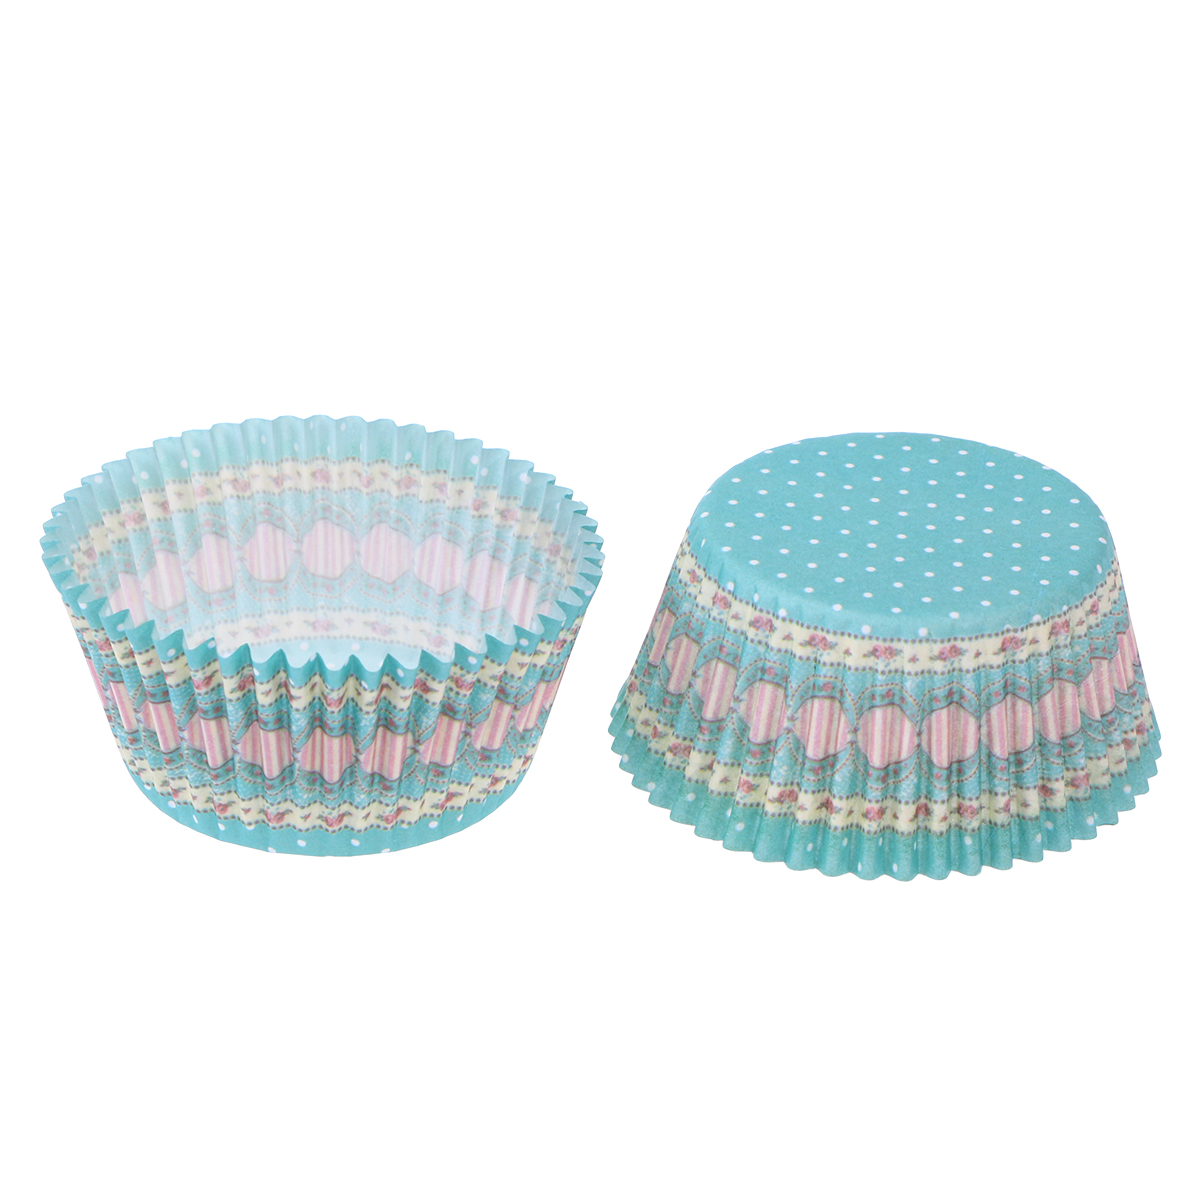 Liner Party Supplies Baking Mold Muffin Cases Cake Paper Cups Cupcake Wrappers